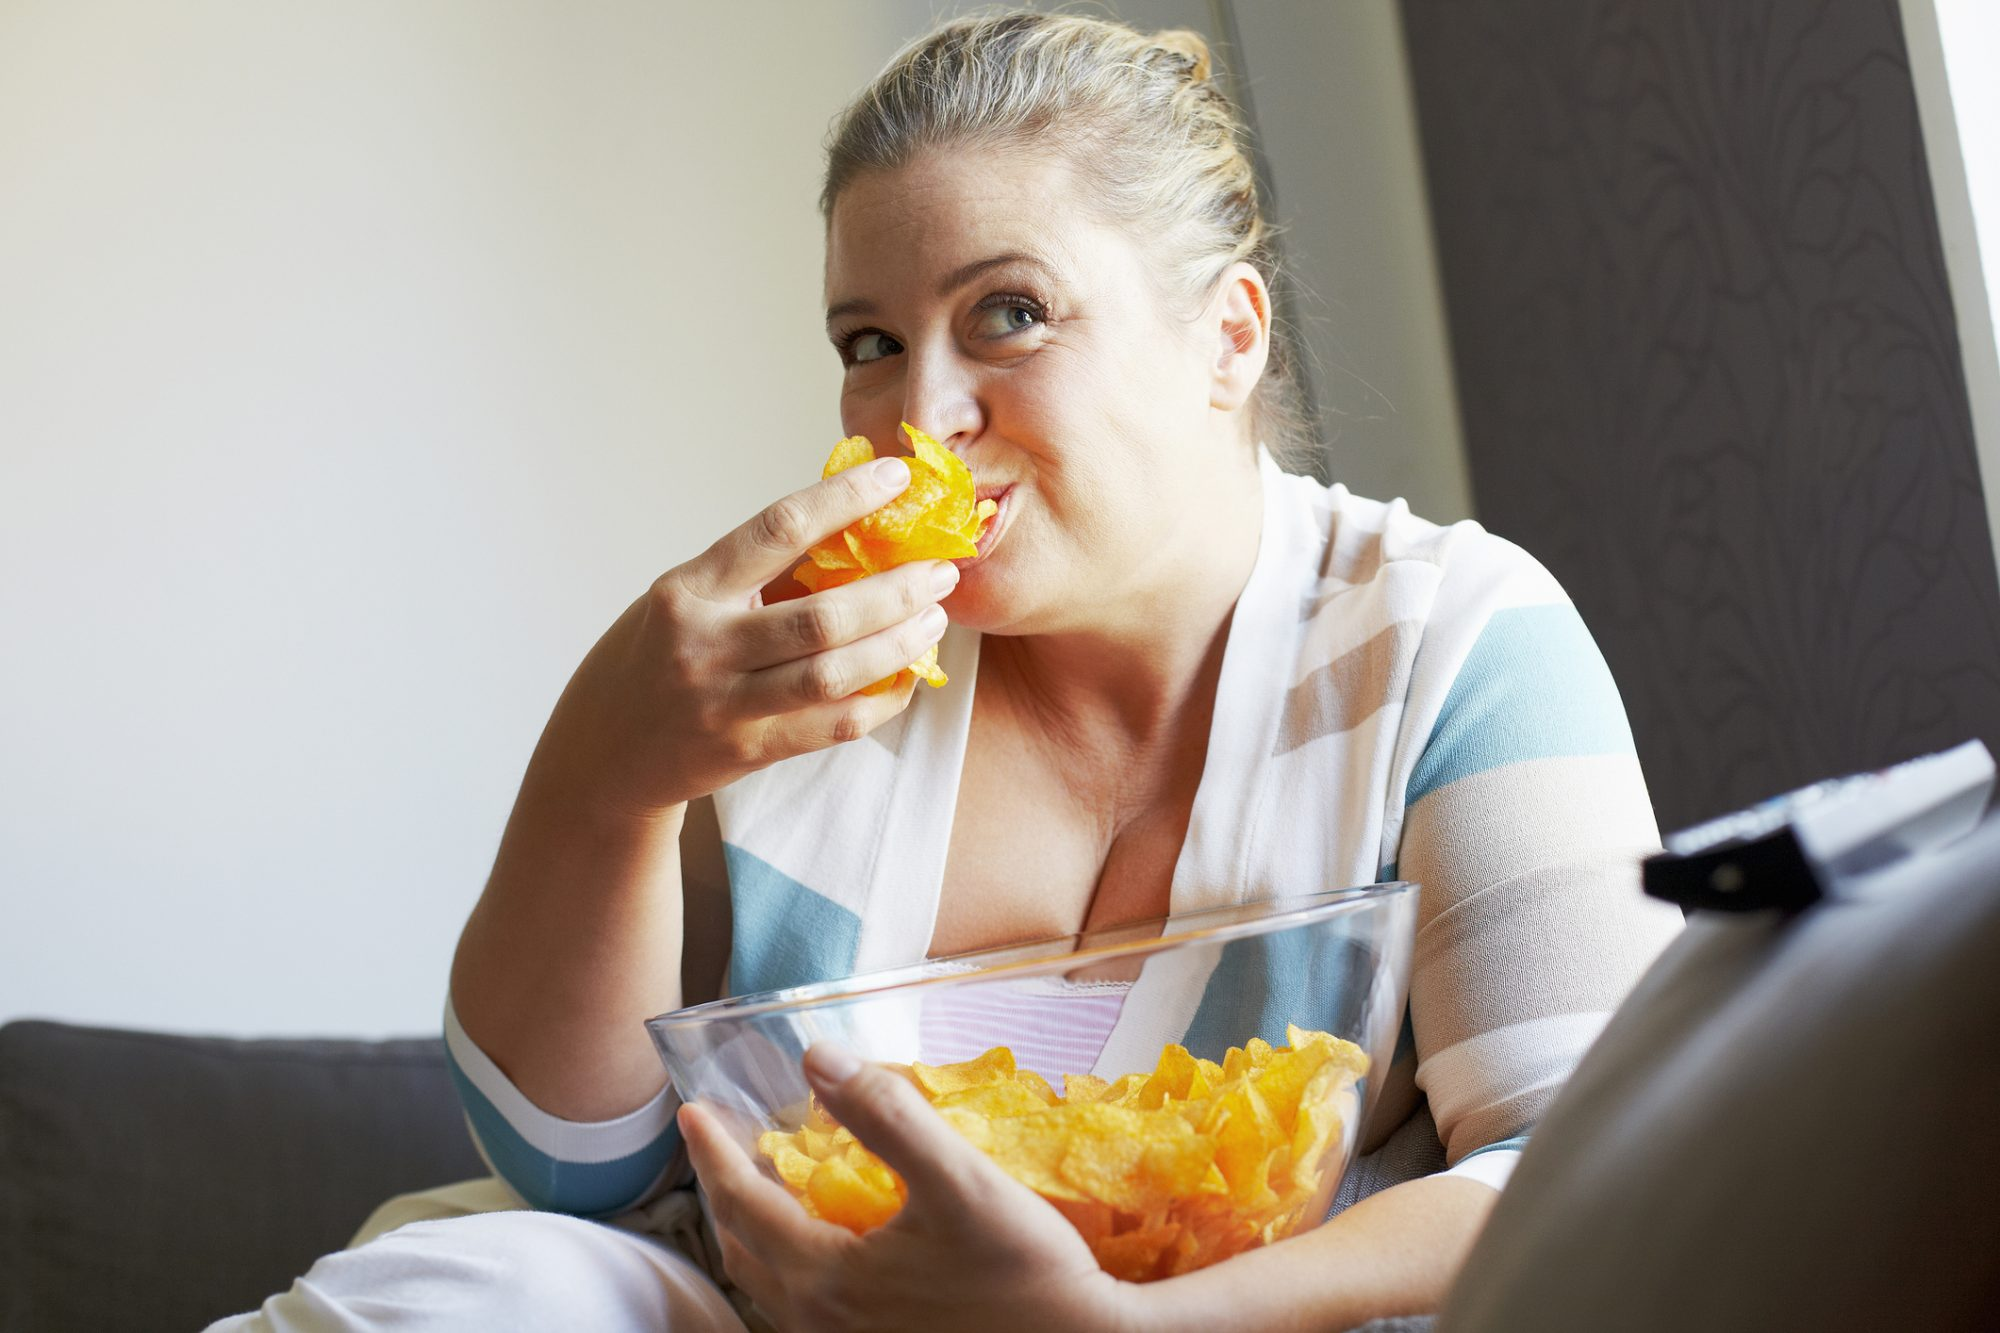 Smiling woman eating chips on sofa